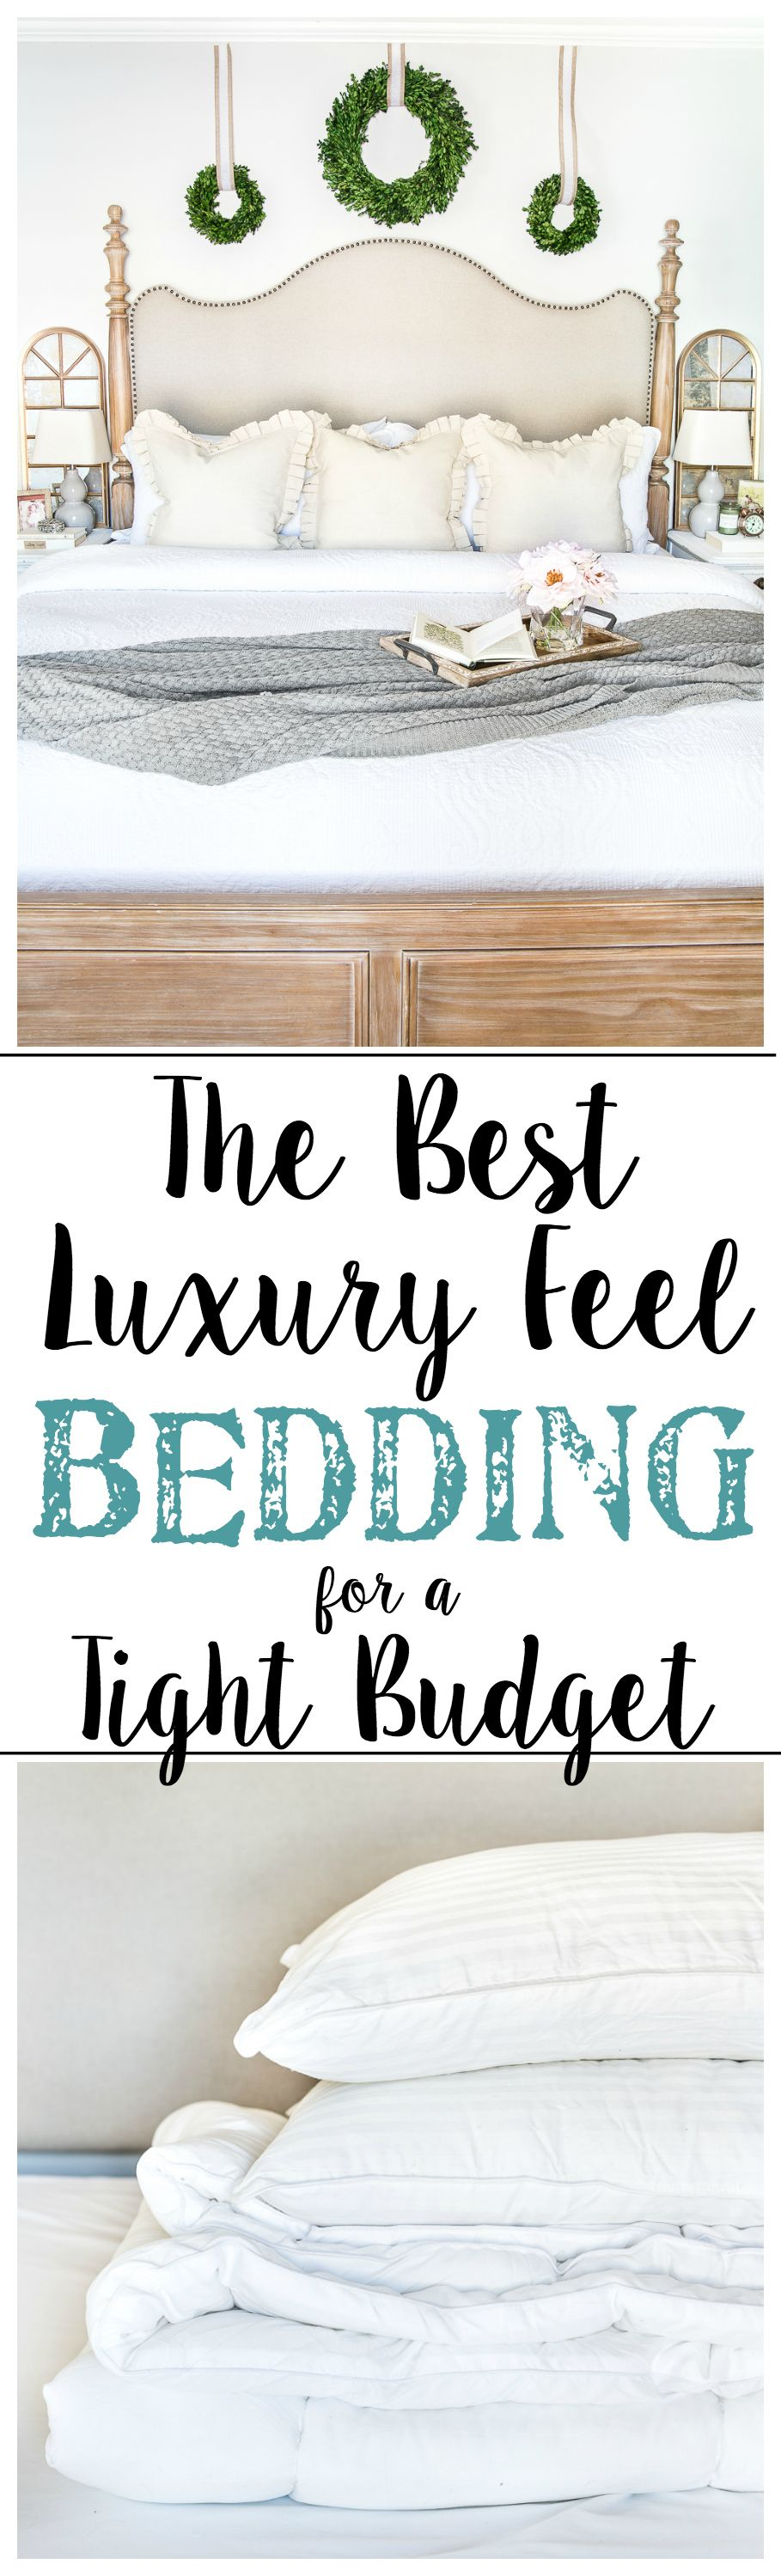 The Best Luxury Feel Bedding for a Tight Budget | Cheap ... on Luxury Bedroom Ideas On A Budget  id=80111